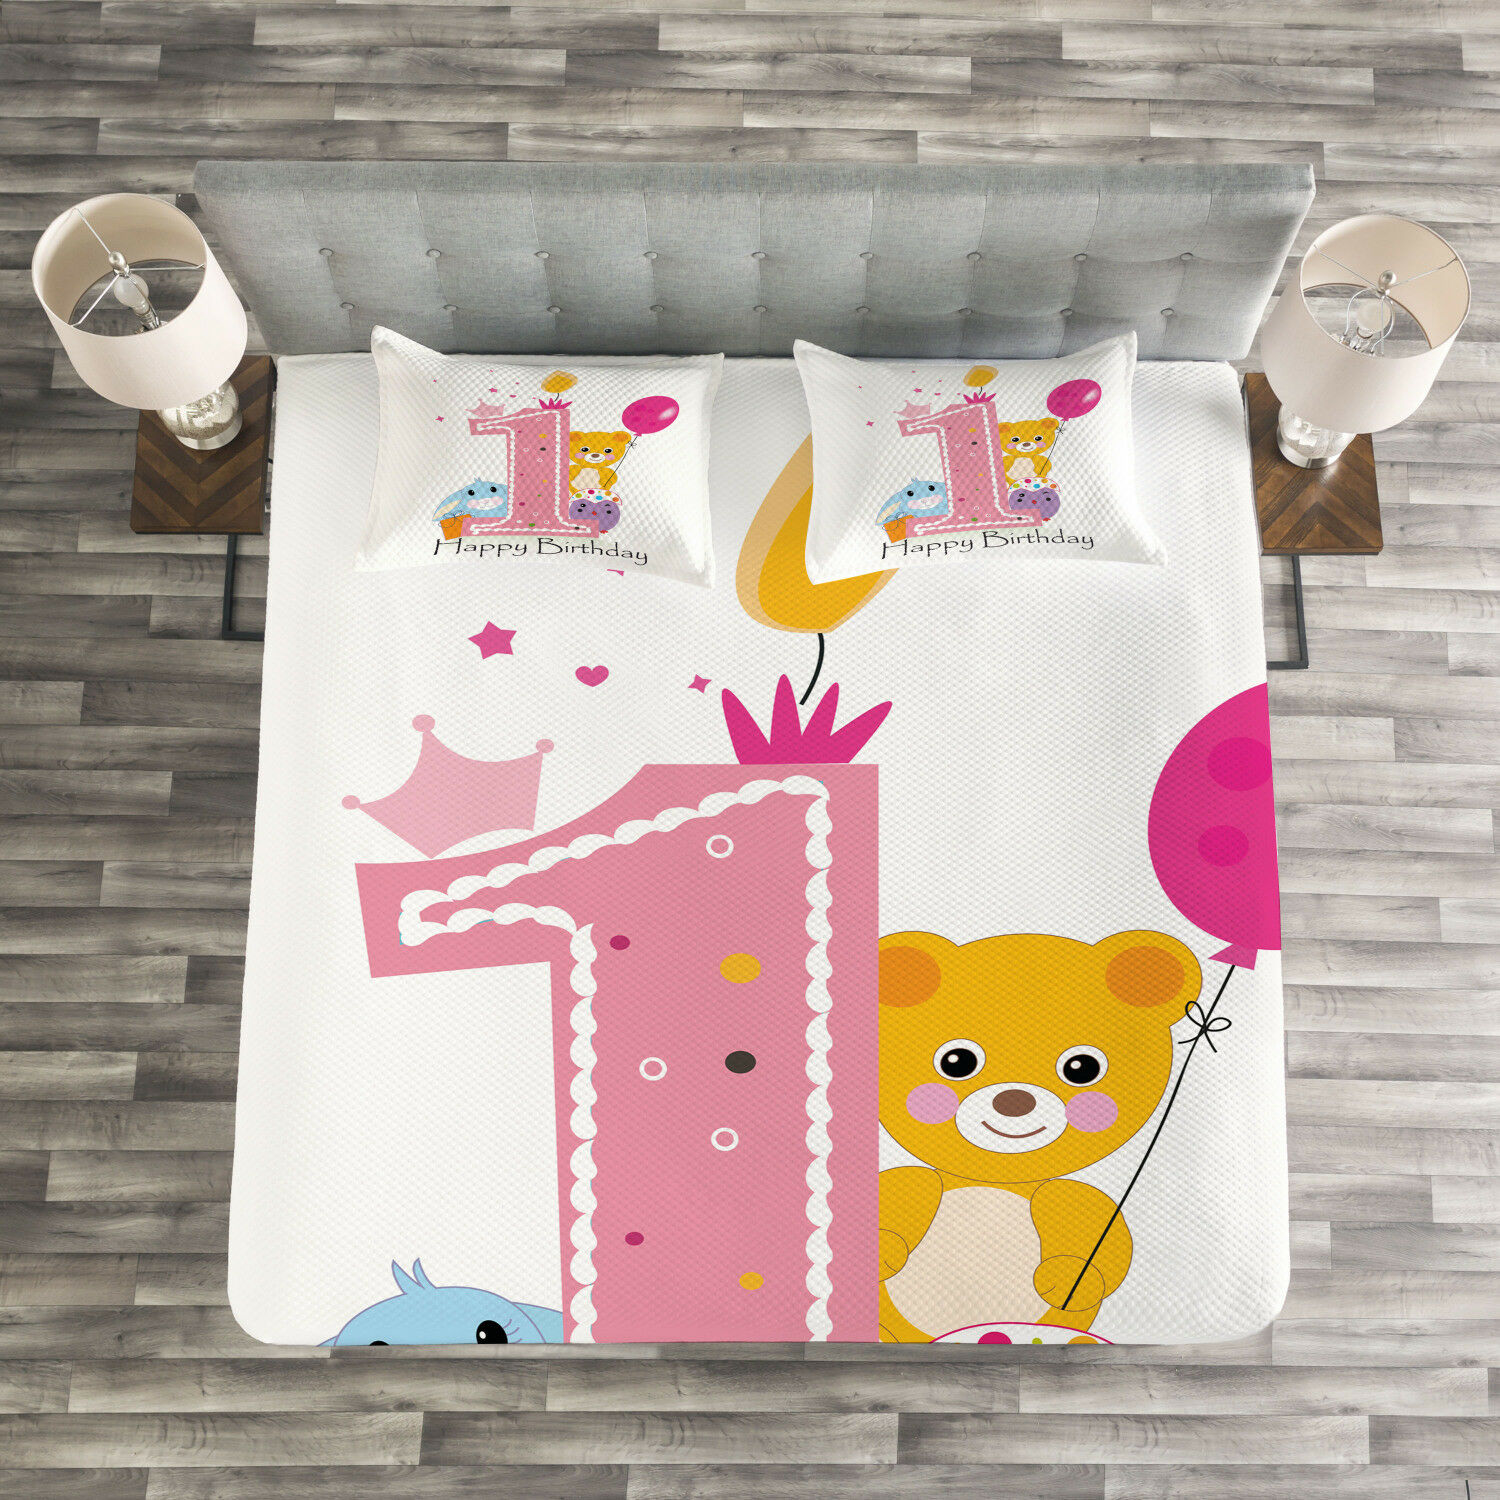 Birthday Quilted Bedspread & Pillow Shams Set, Princess Girl Party Print